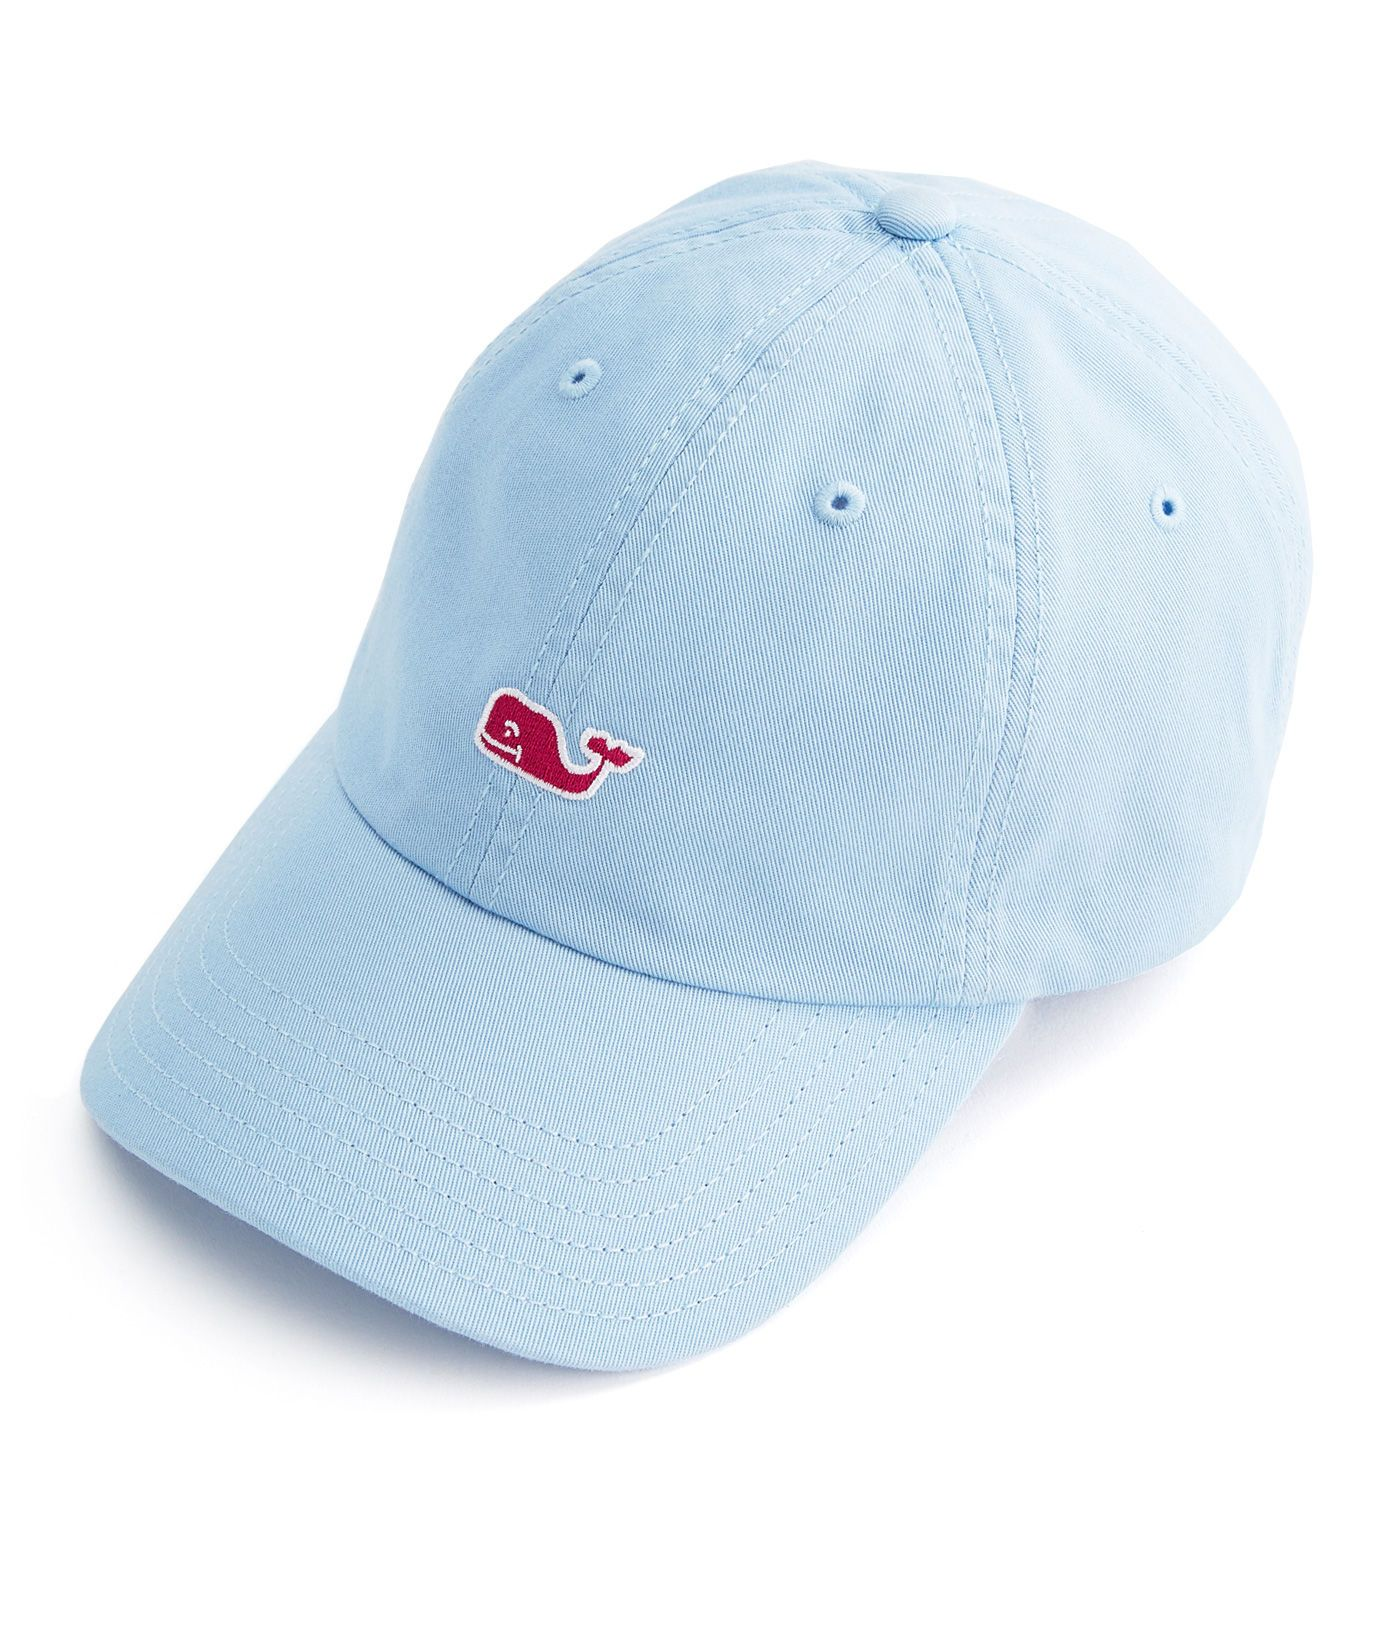 Shop Womens Classic Baseball Hat at vineyard vines in Cloud or Raspberry  Rose 32cfc7c8e21a